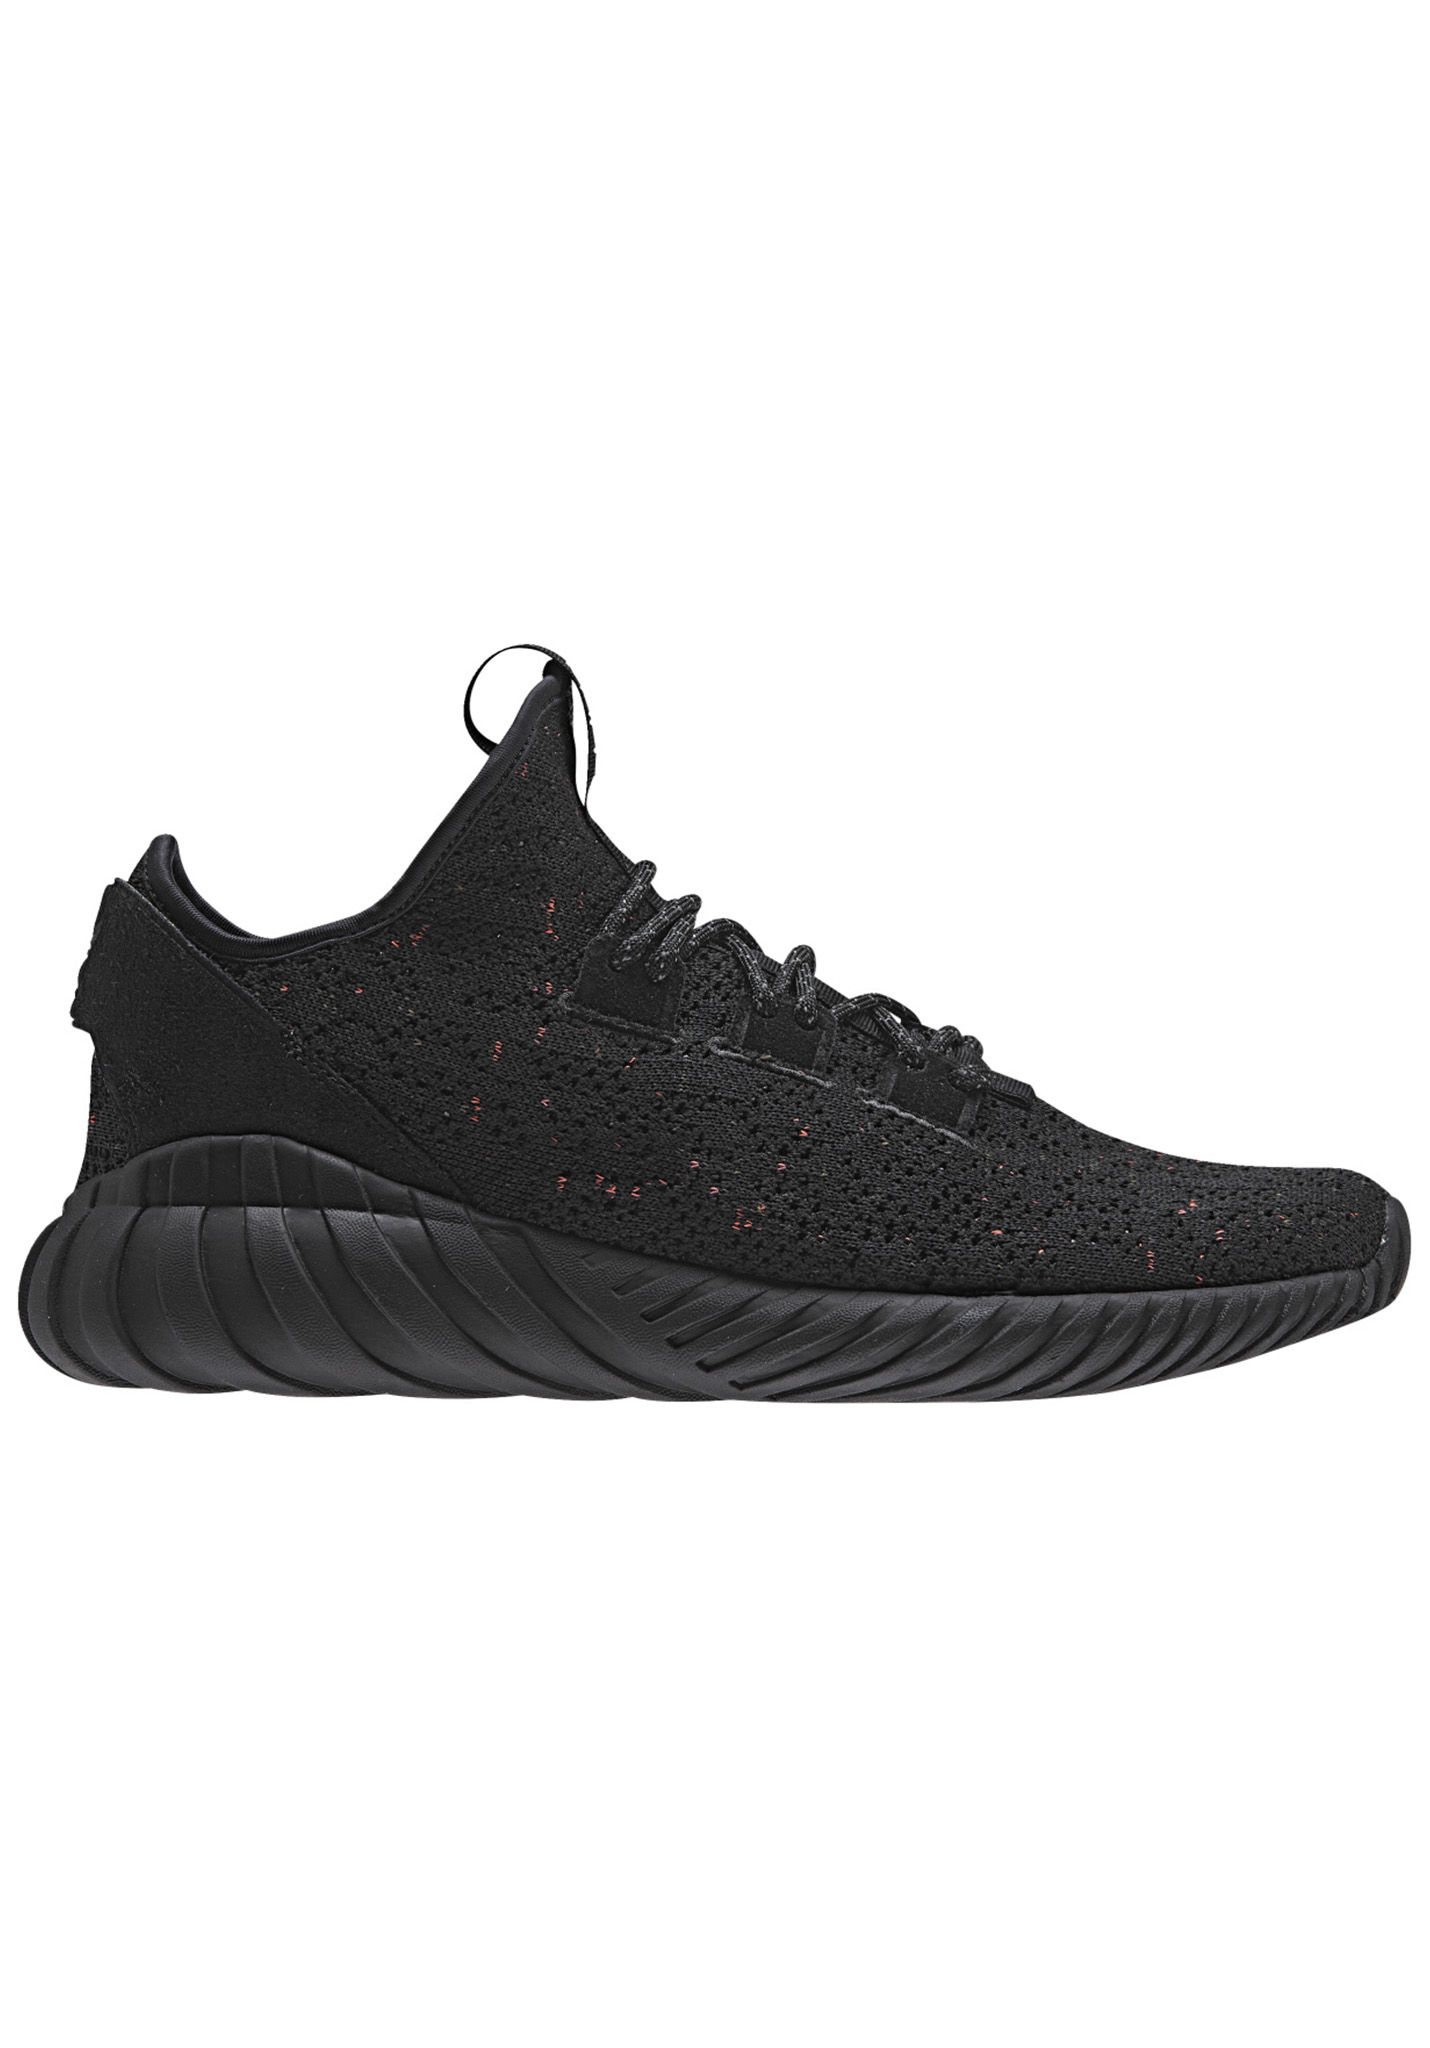 reputable site e1605 447b7 ADIDAS ORIGINALS Tubular Doom Sock Primeknit - Zapatillas para Hombres -  Negro - Planet Sports